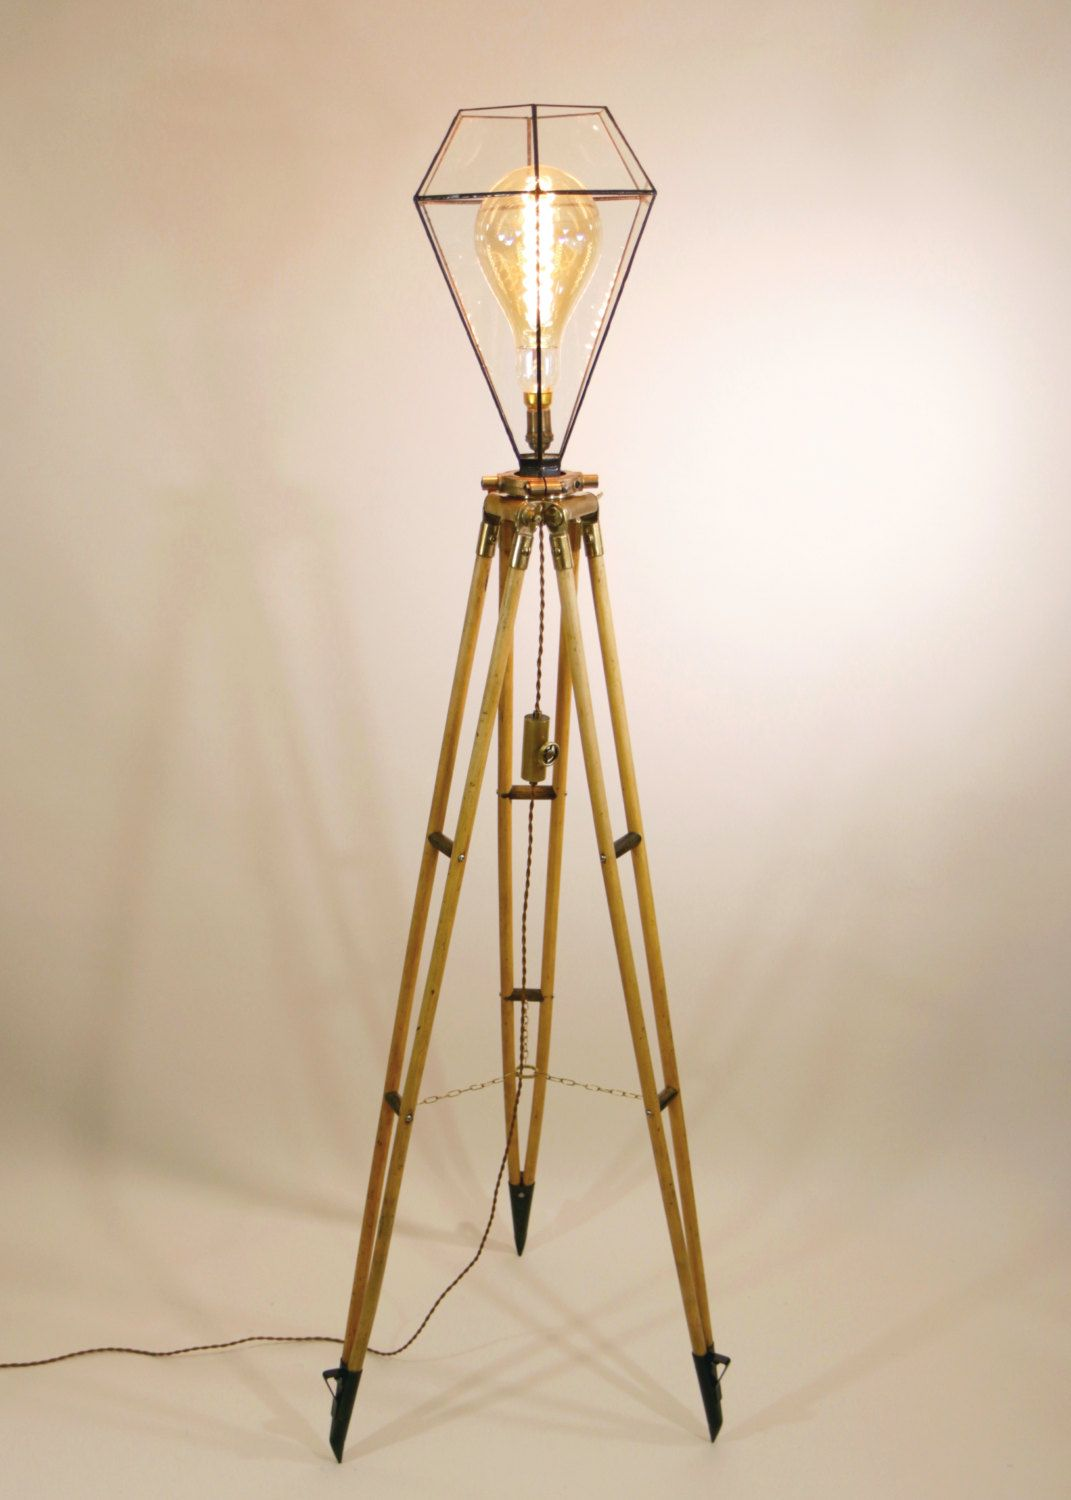 Vintage surveyor39s tripod floor lamp surveying stand lamp for Surveyors floor lamp wood